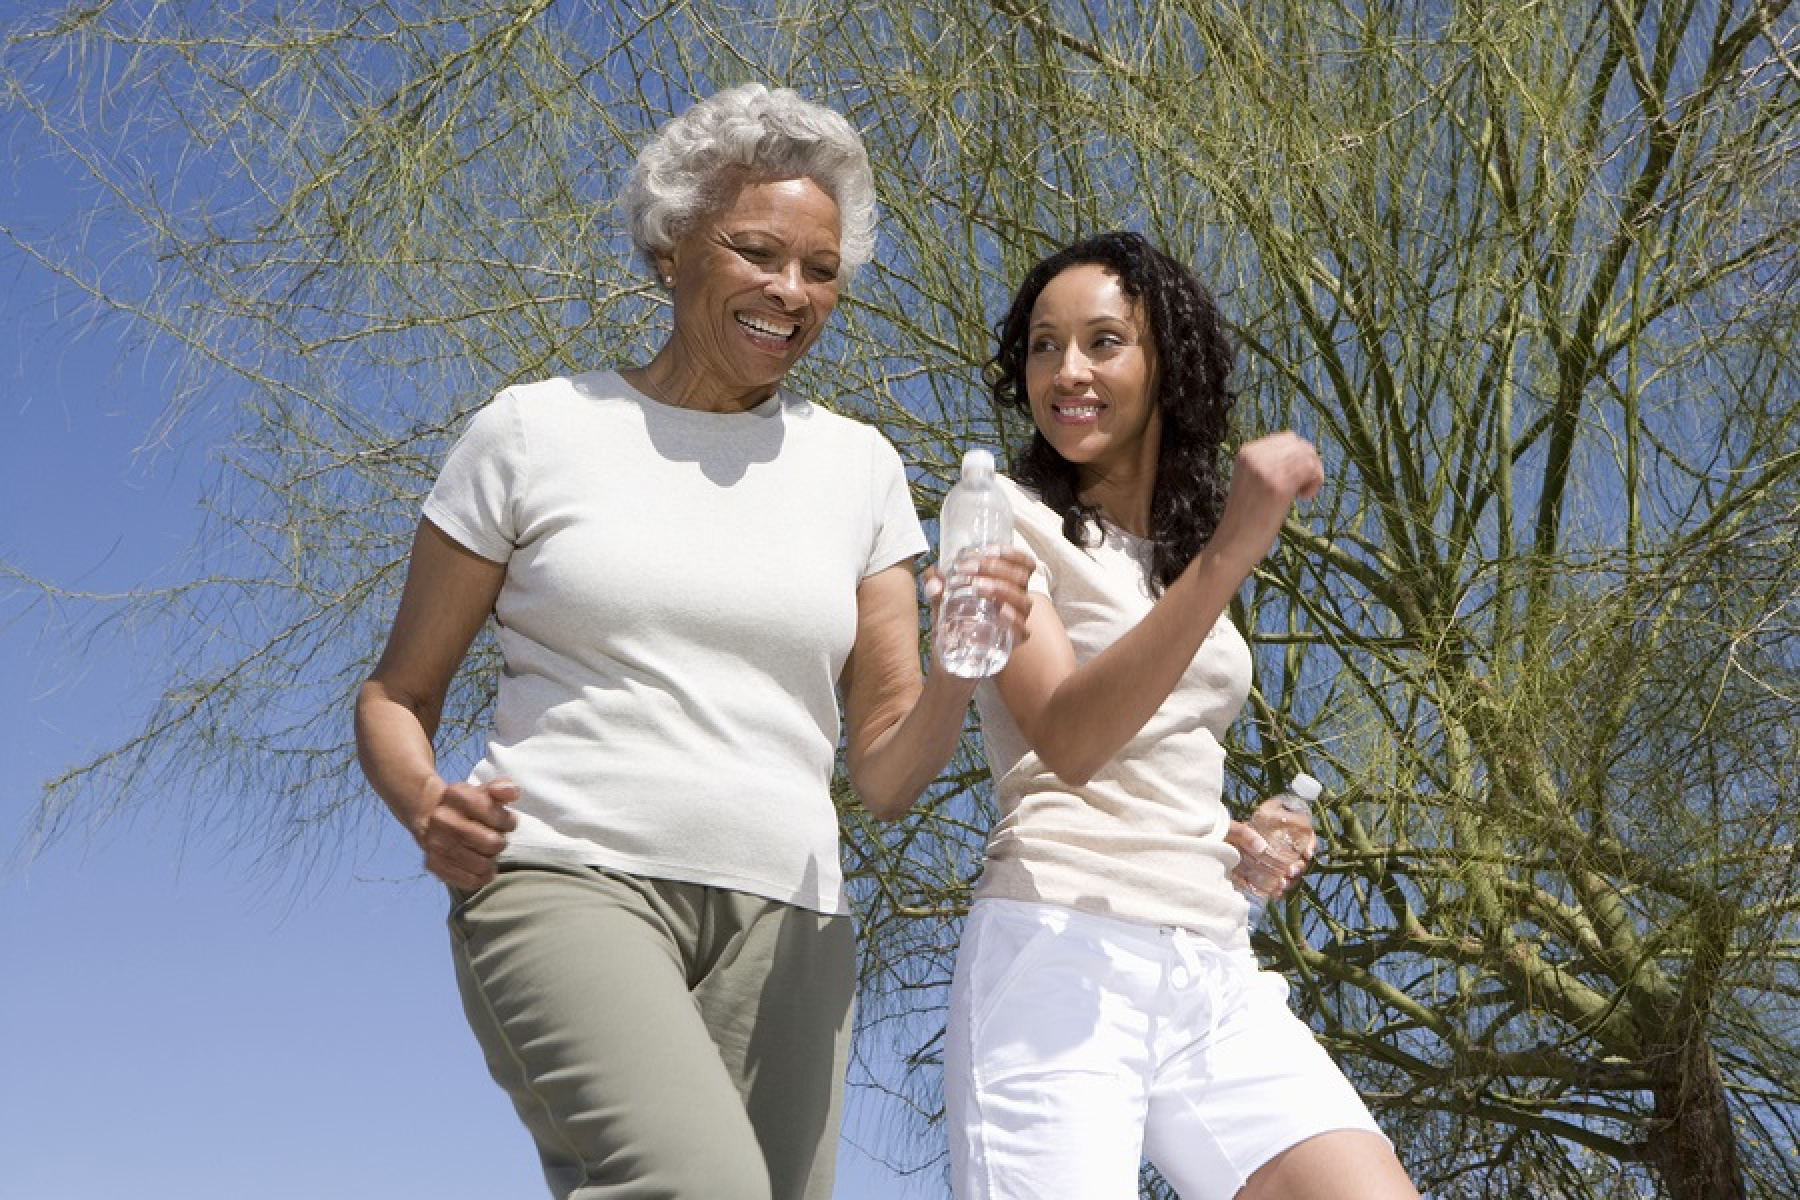 Home Health Care in Peoria AZ: Being Active